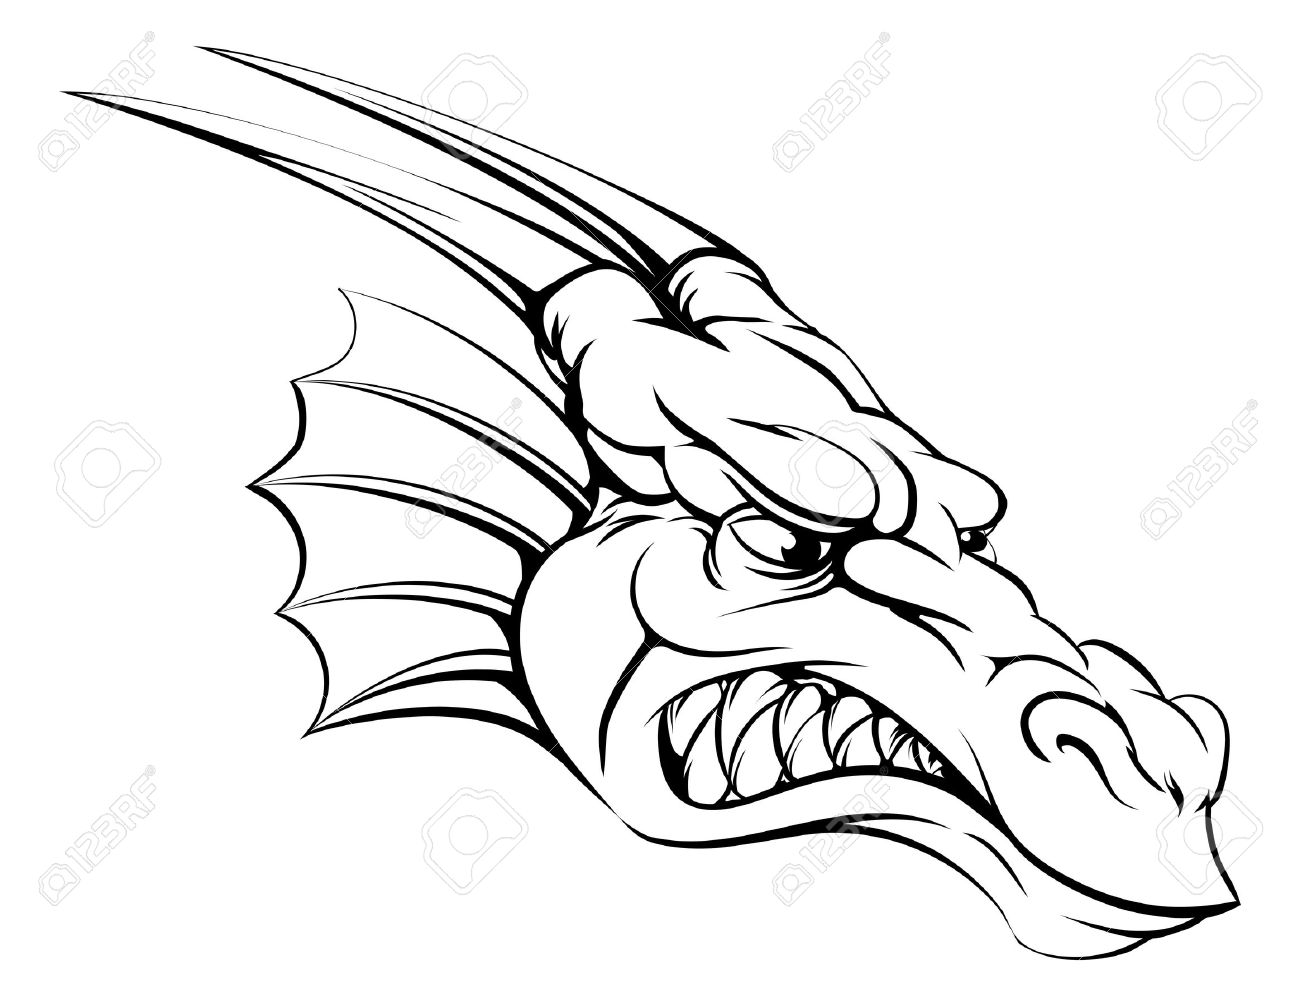 1300x1006 A Drawing Of A Mean Tough Dragon Mascot Head Royalty Free Cliparts